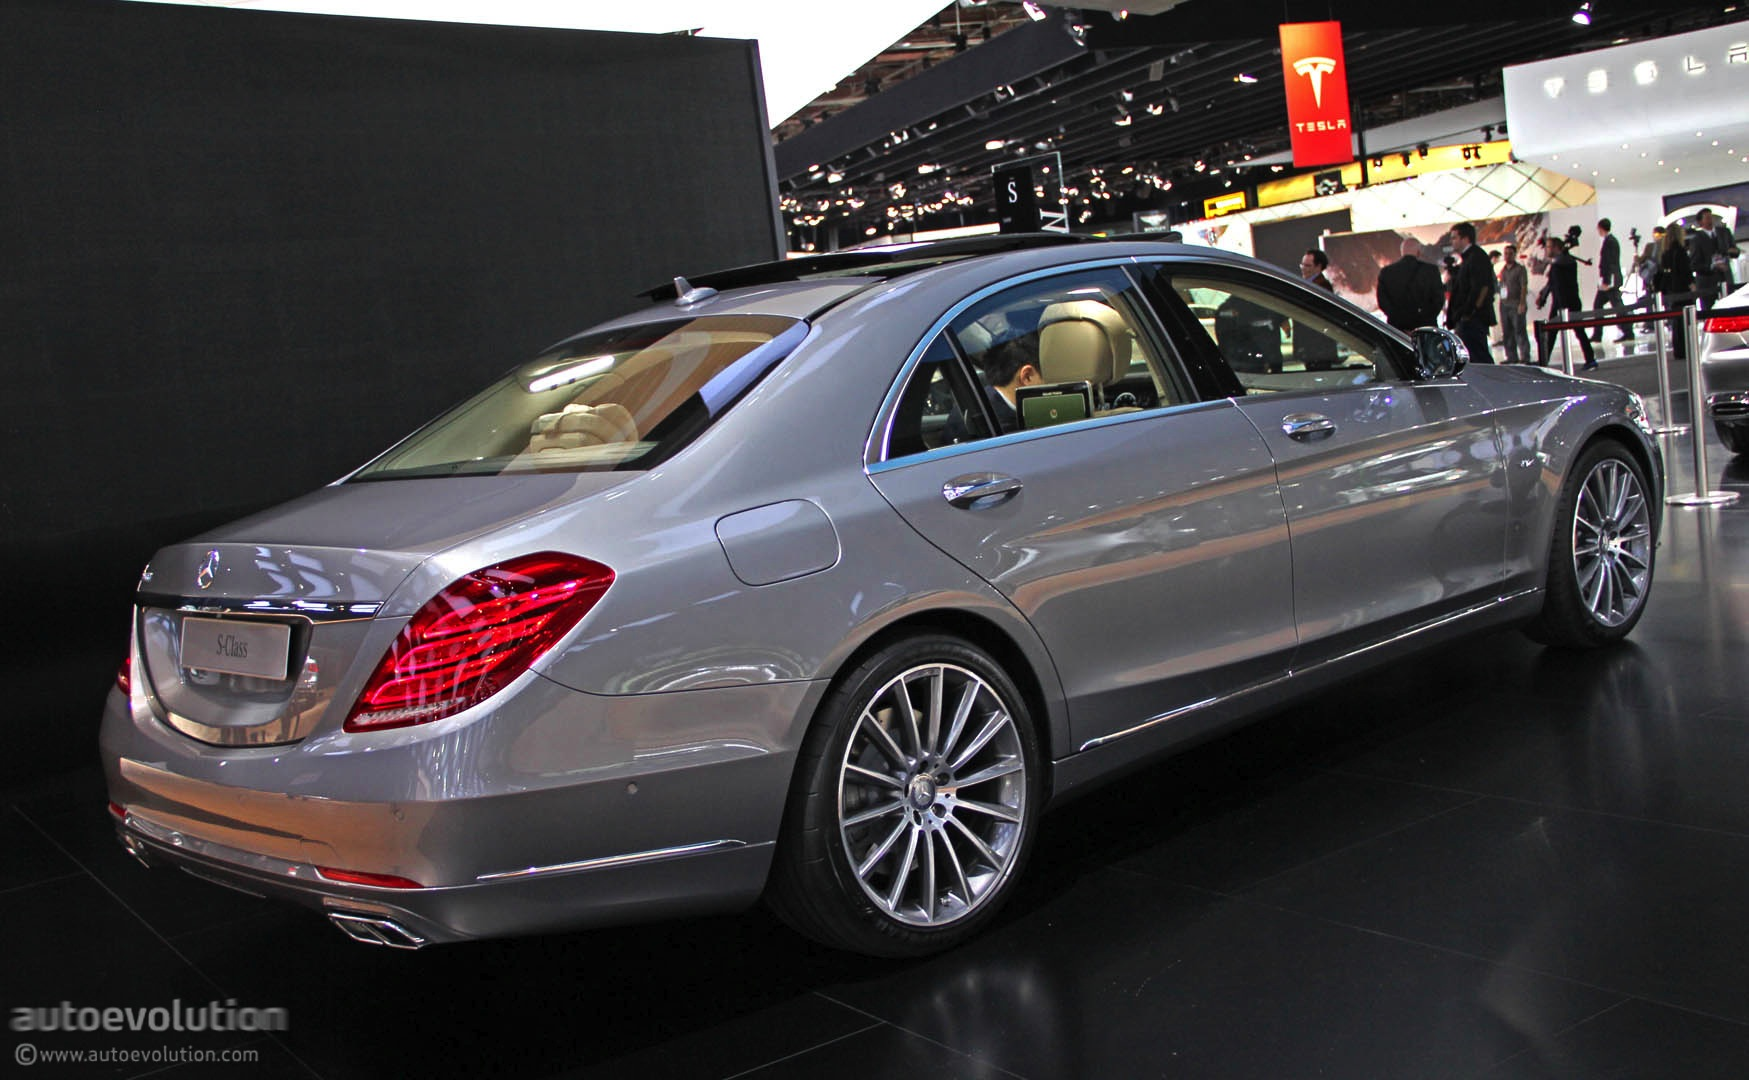 mercedes s600 debuts in detroit with 6 liter v12 live photos autoevolution. Black Bedroom Furniture Sets. Home Design Ideas